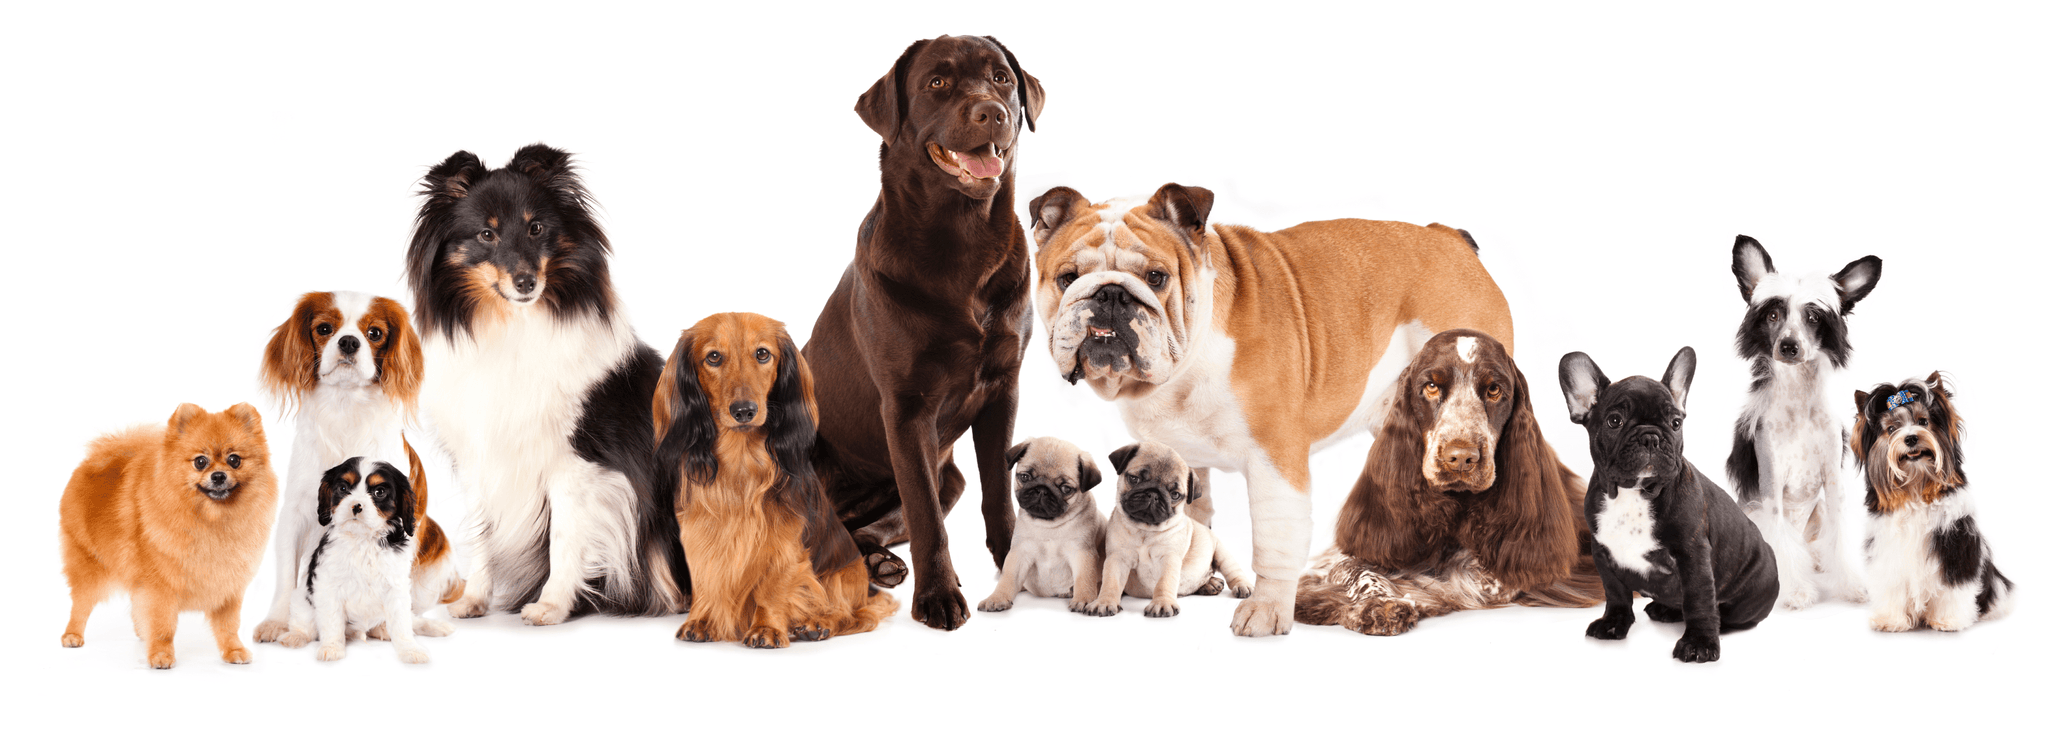 Learn How Genteel Can Help You and Your Furry Friends!